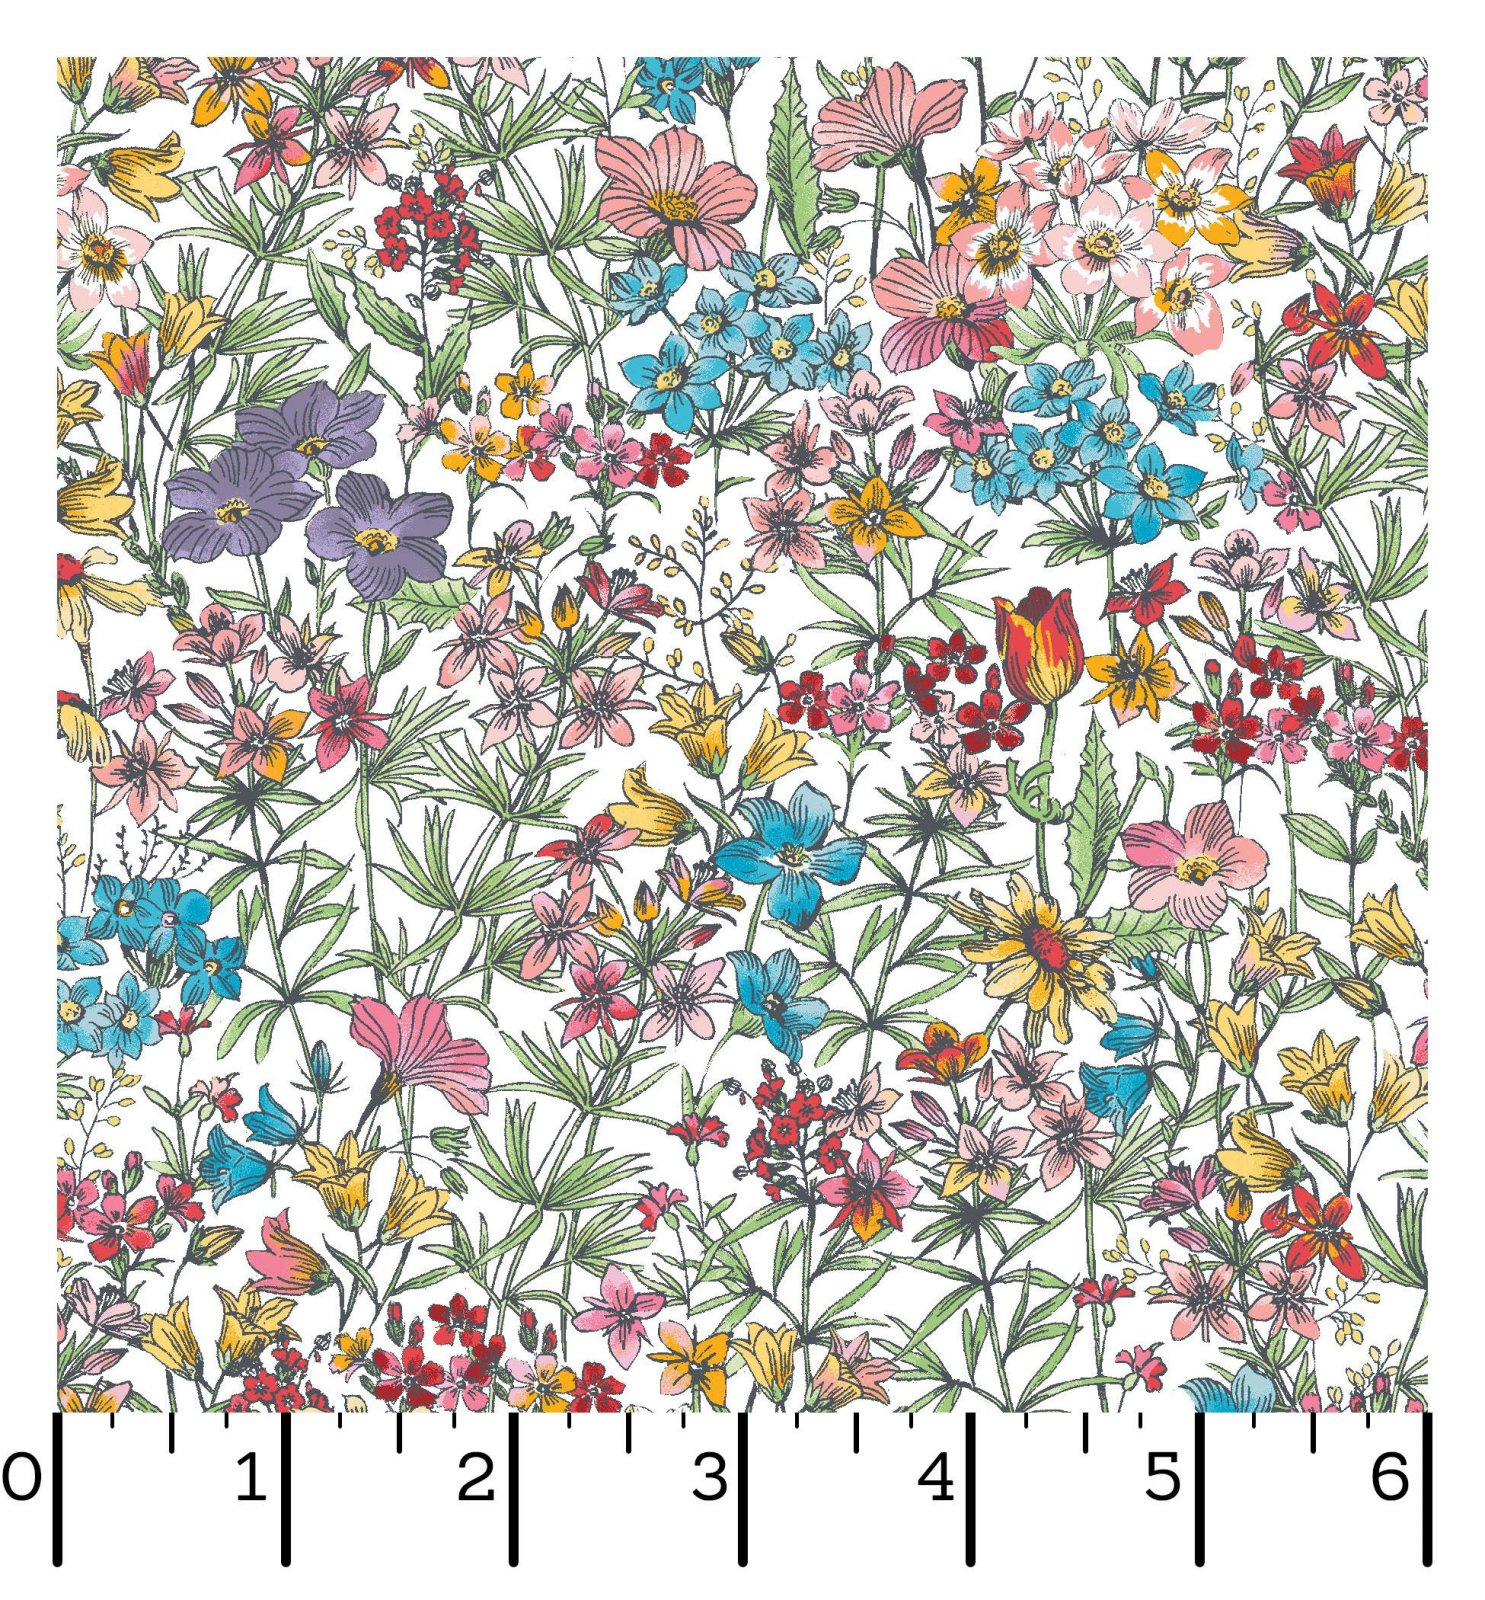 EESC-D10003 W - MEADOW EDGE BY MAYWOOD STUDIO SMALL PACKED FLOWER WHITE - ARRIVING IN MAY 2021